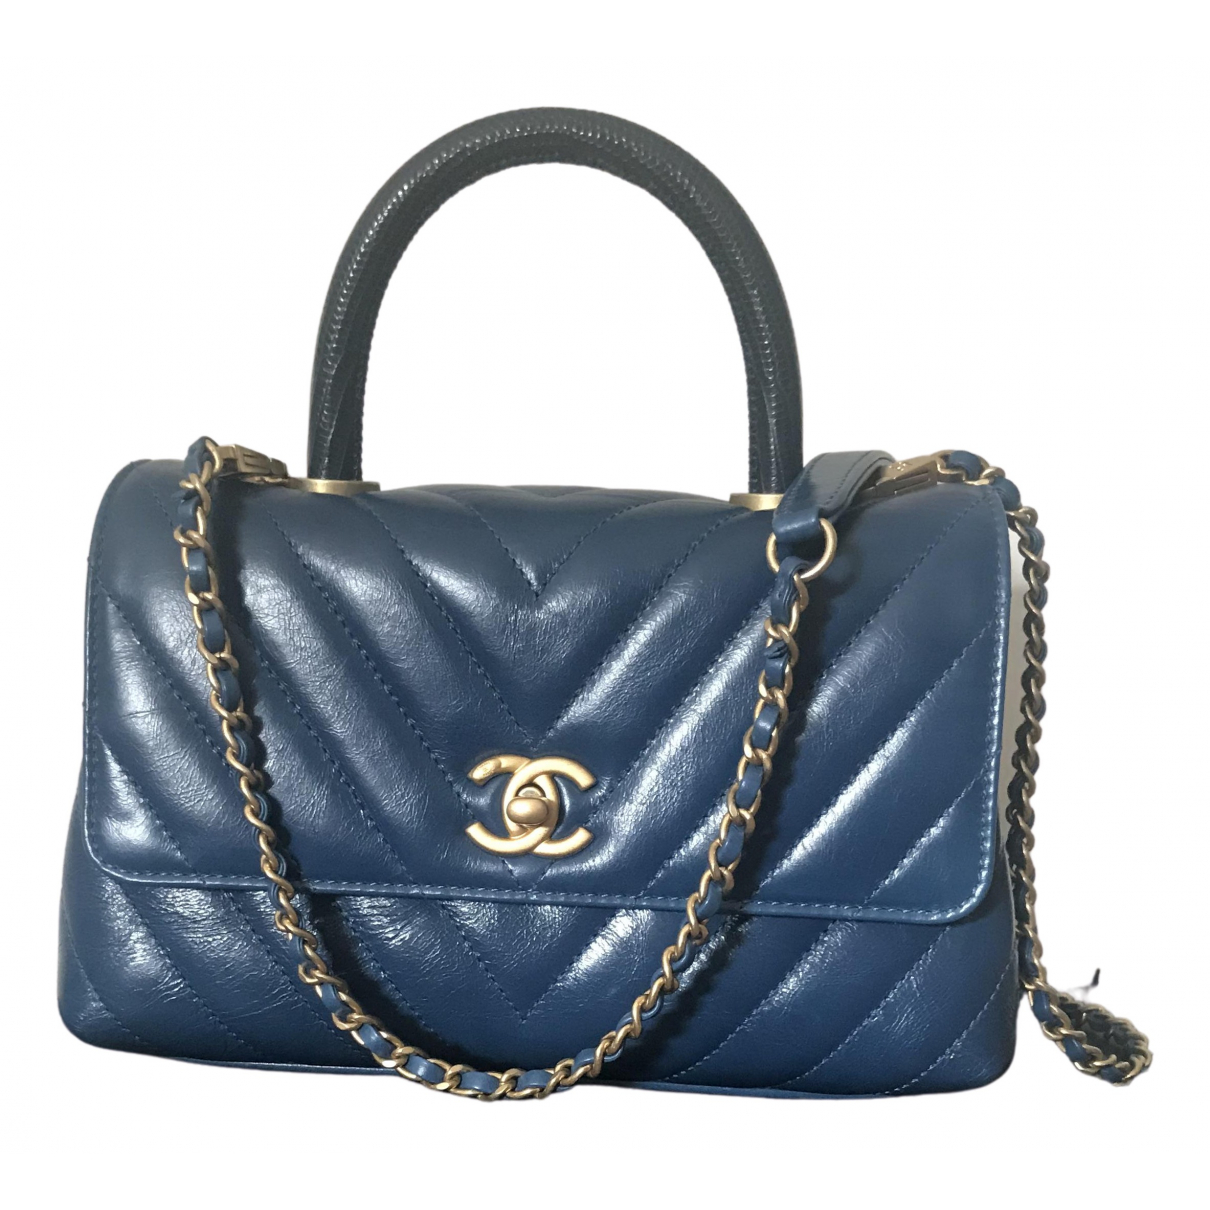 Bolso  Coco Handle de Cuero Chanel